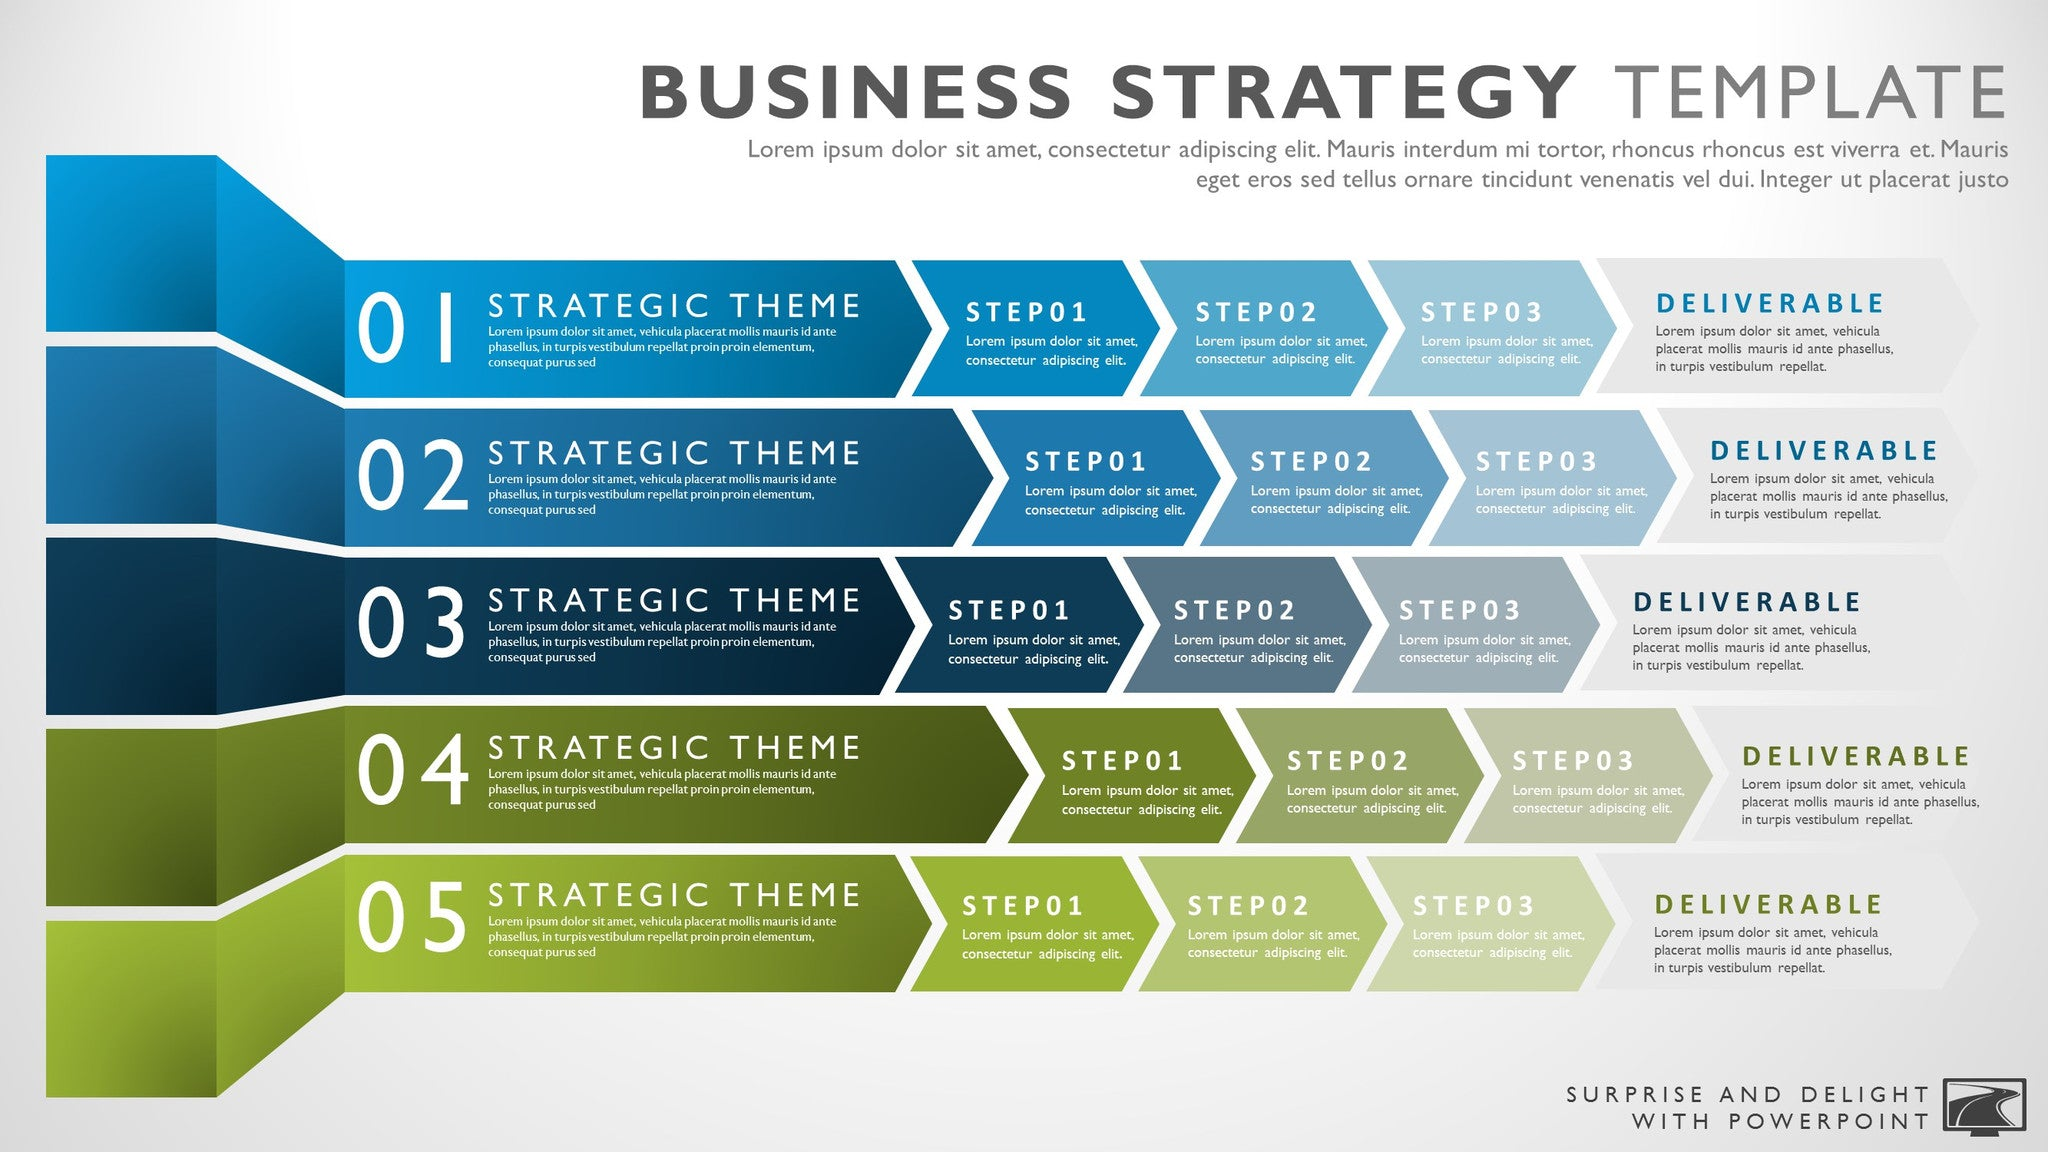 Marvelous Business Strategy Template